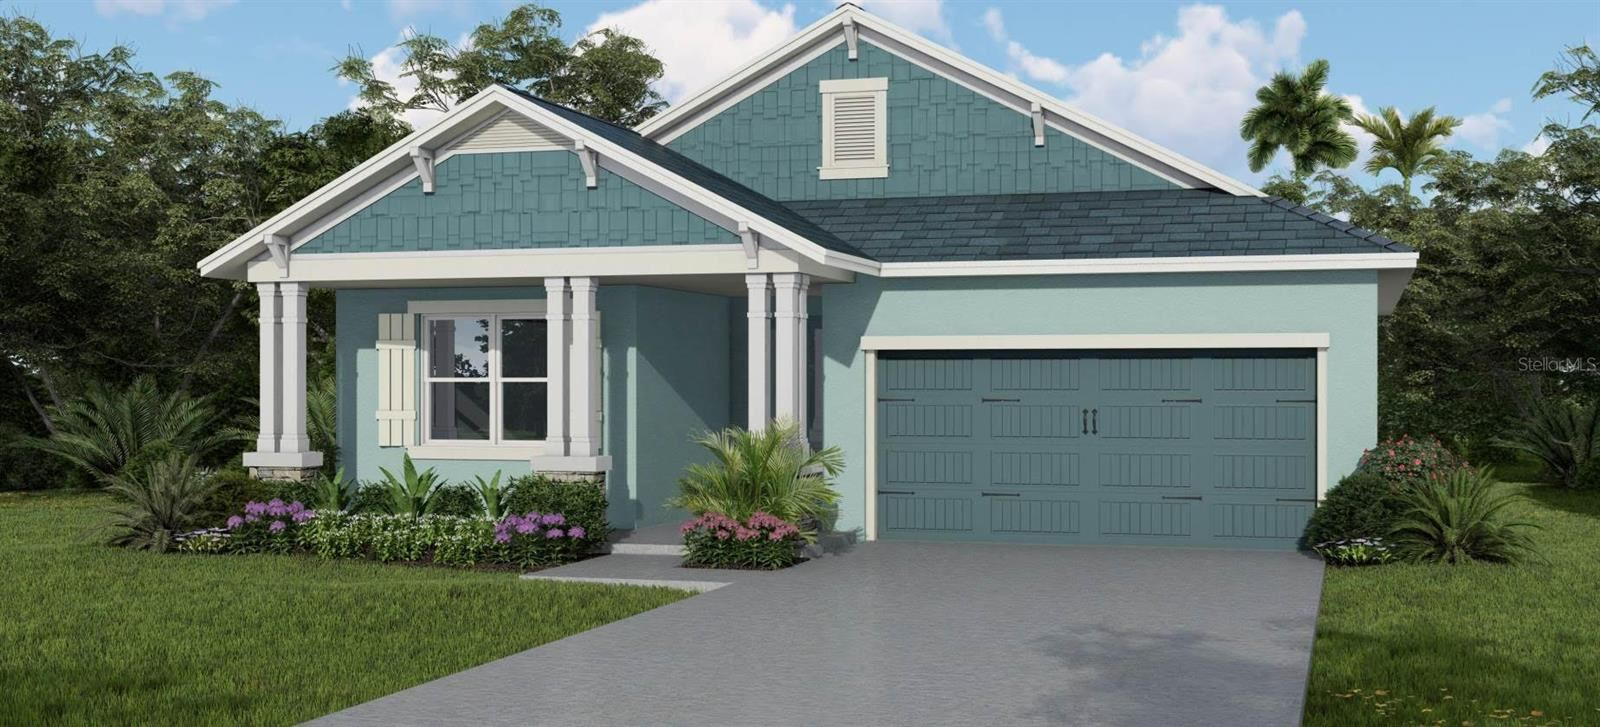 1327 NEWHOPE ROAD, Spring Hill, FL 34606 - #: T3320173